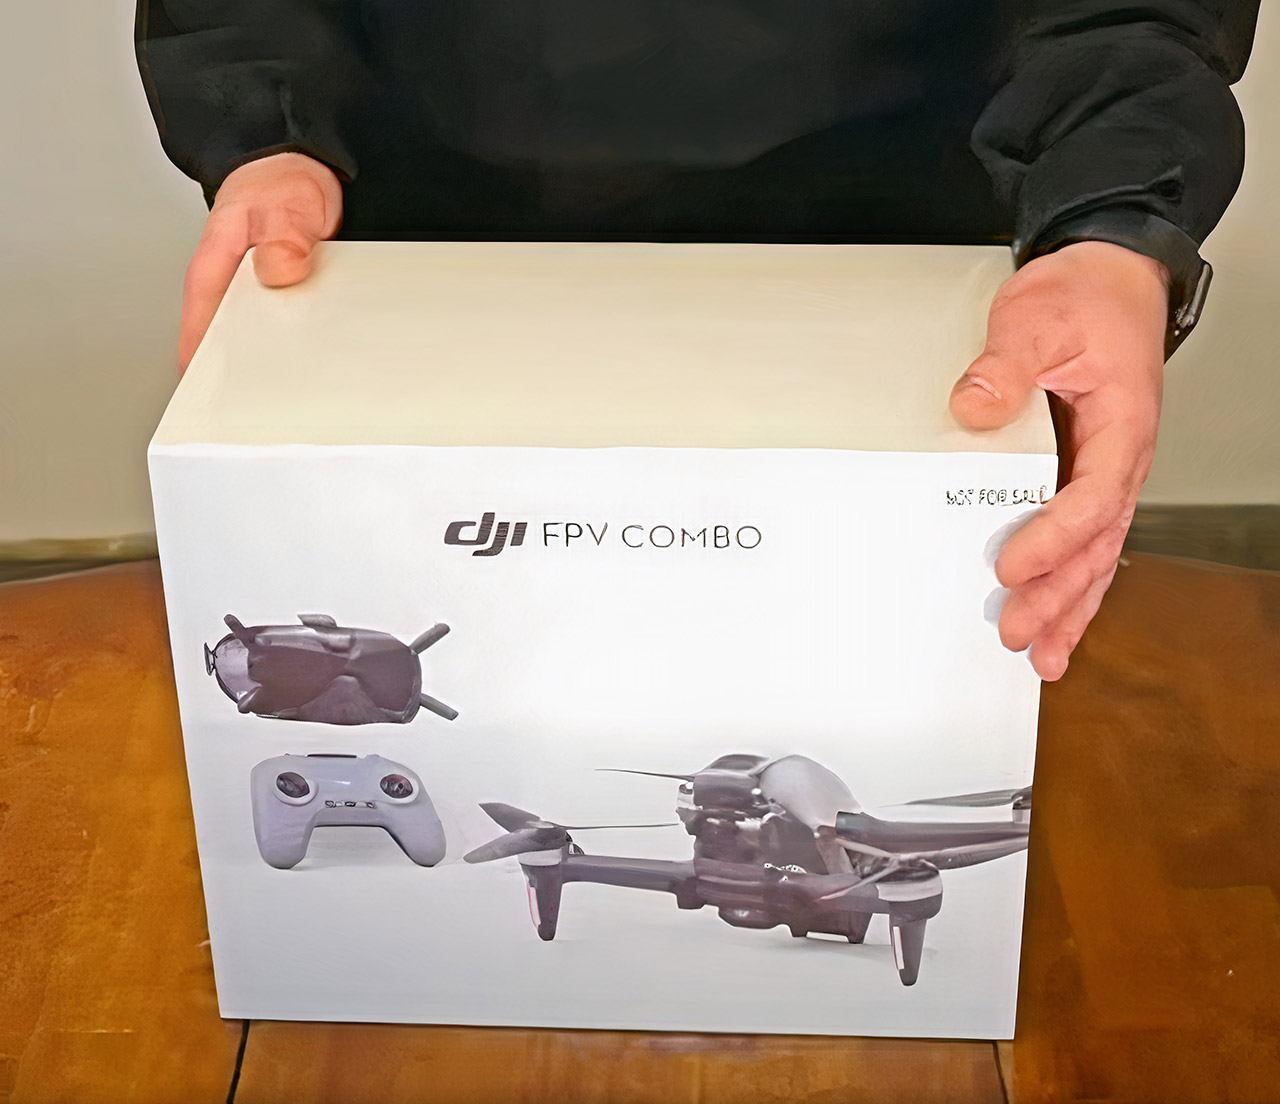 DJI First-Person View Combo Drone Unboxing